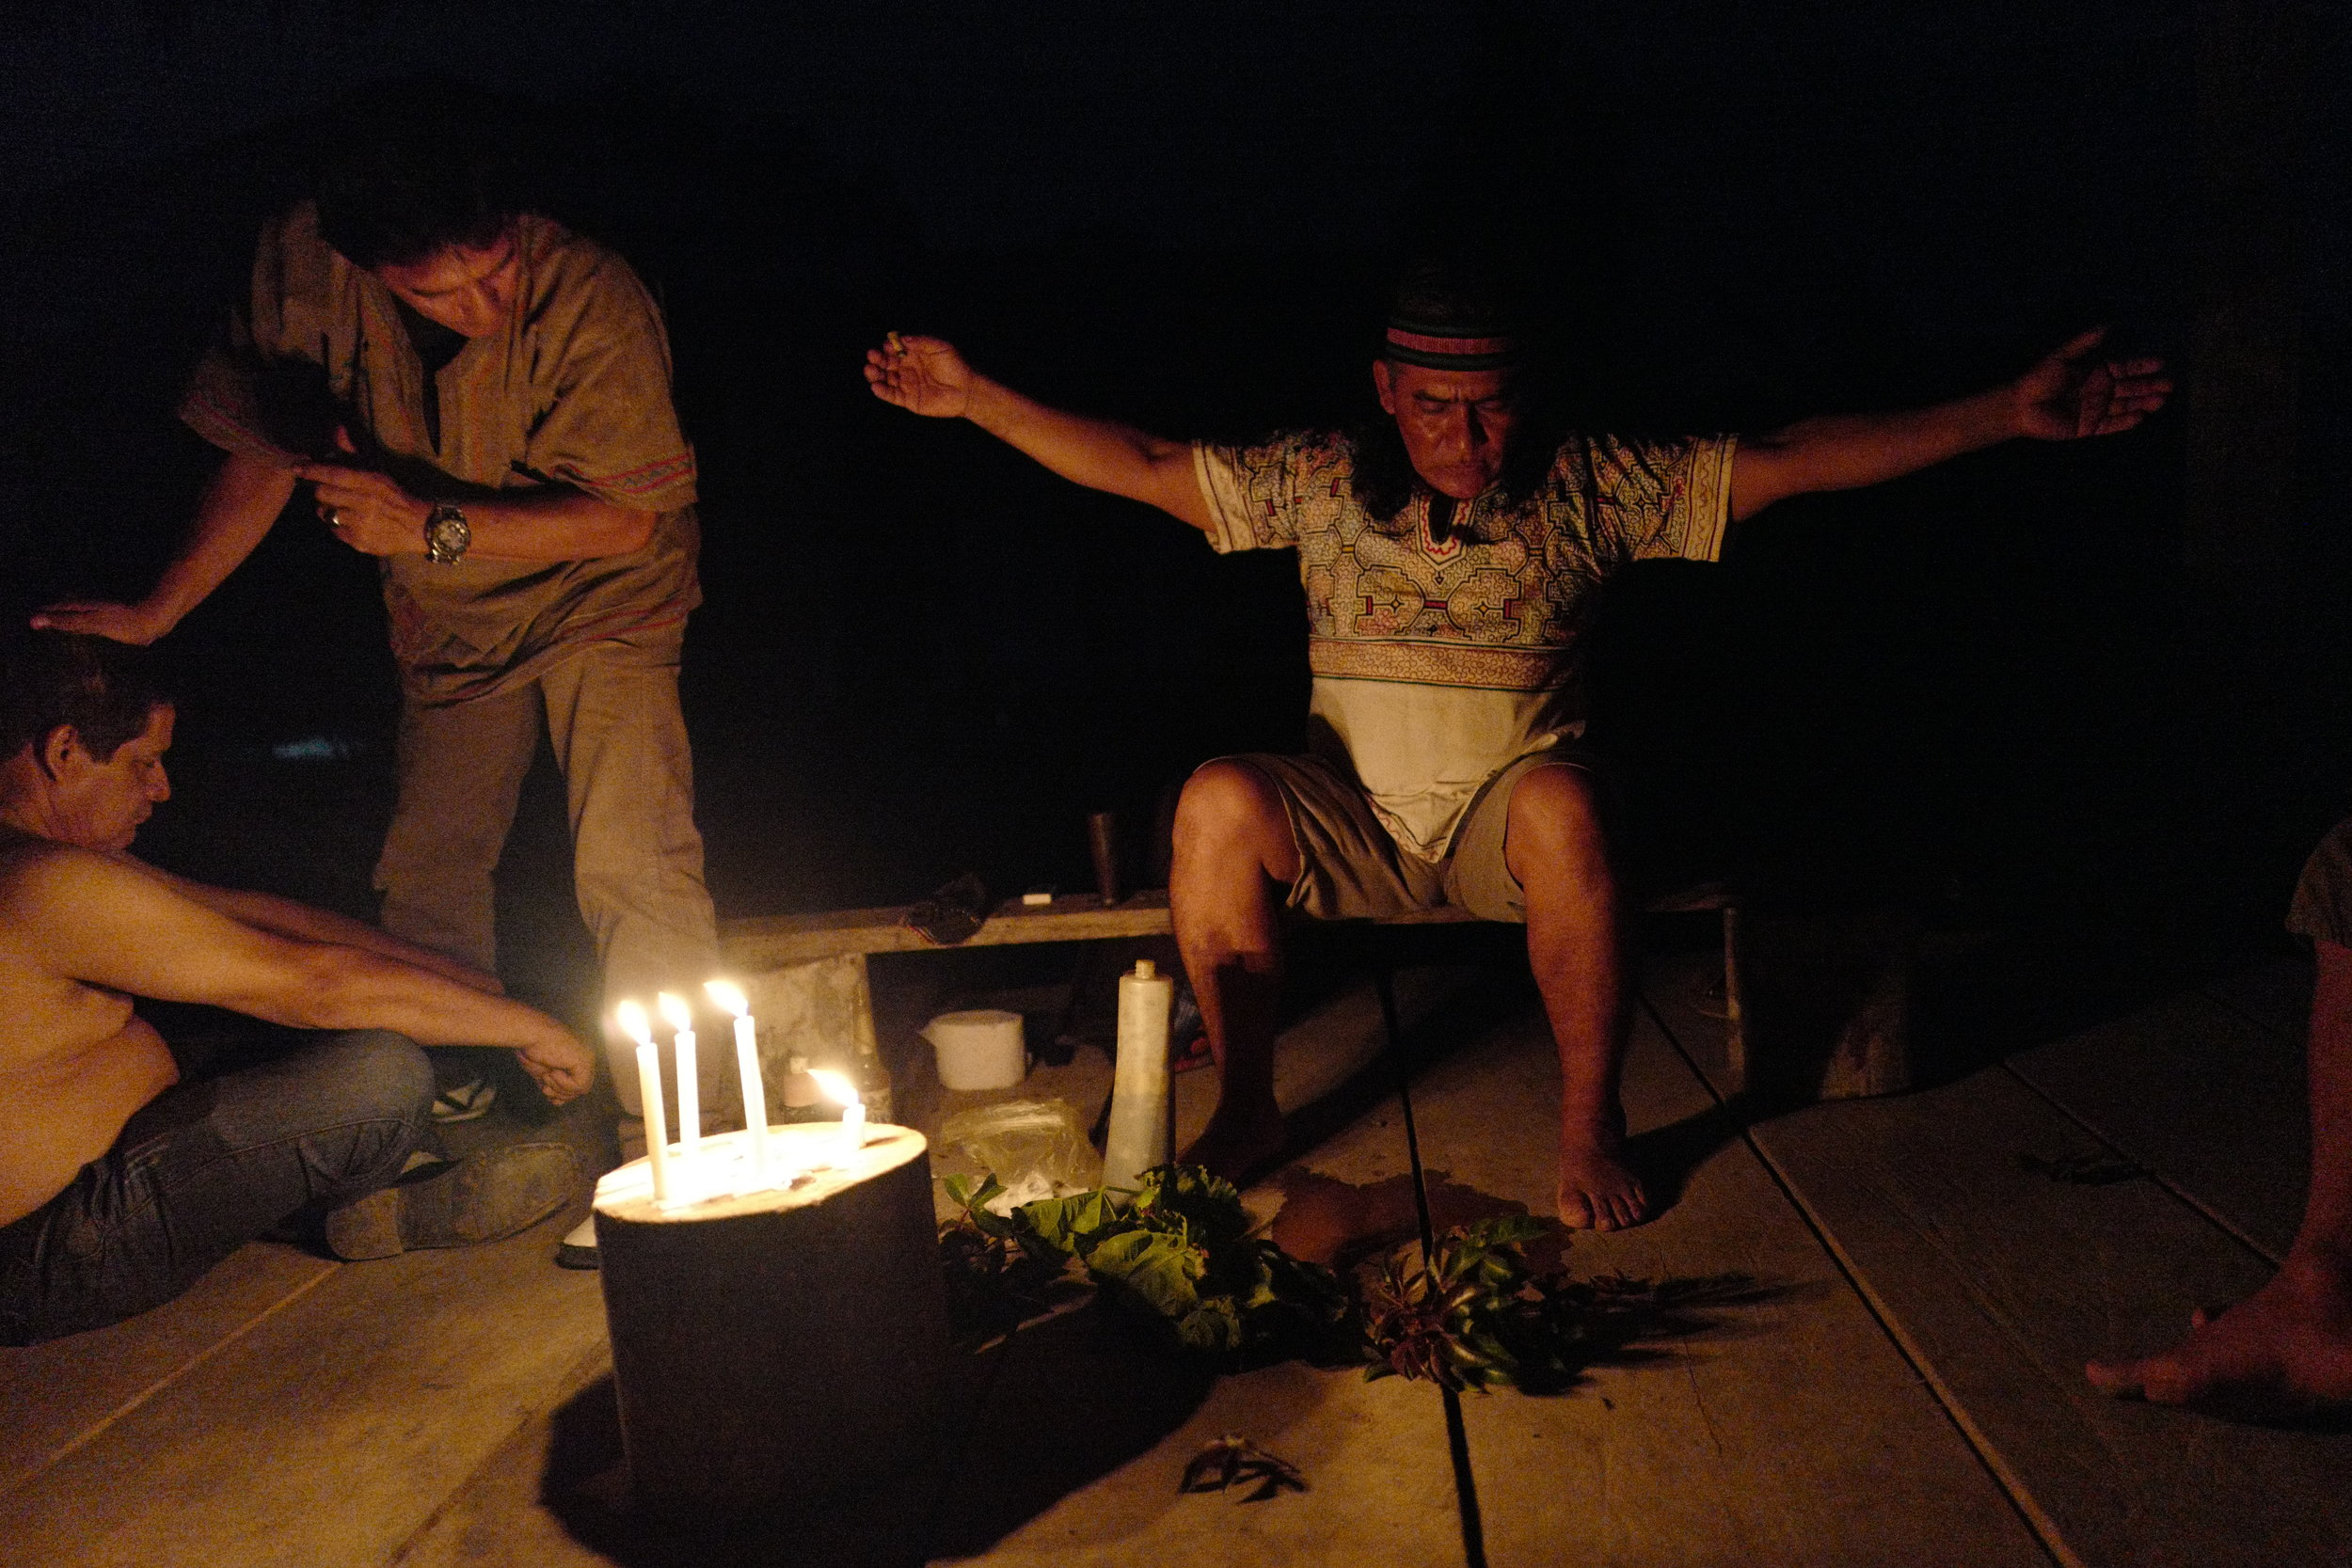 SHAMAN MAGNO ZAMBRANO PANDURO LEADS AN AYAHUASCA CEREMONY IN THE AMAZON. CREDIT: LURE